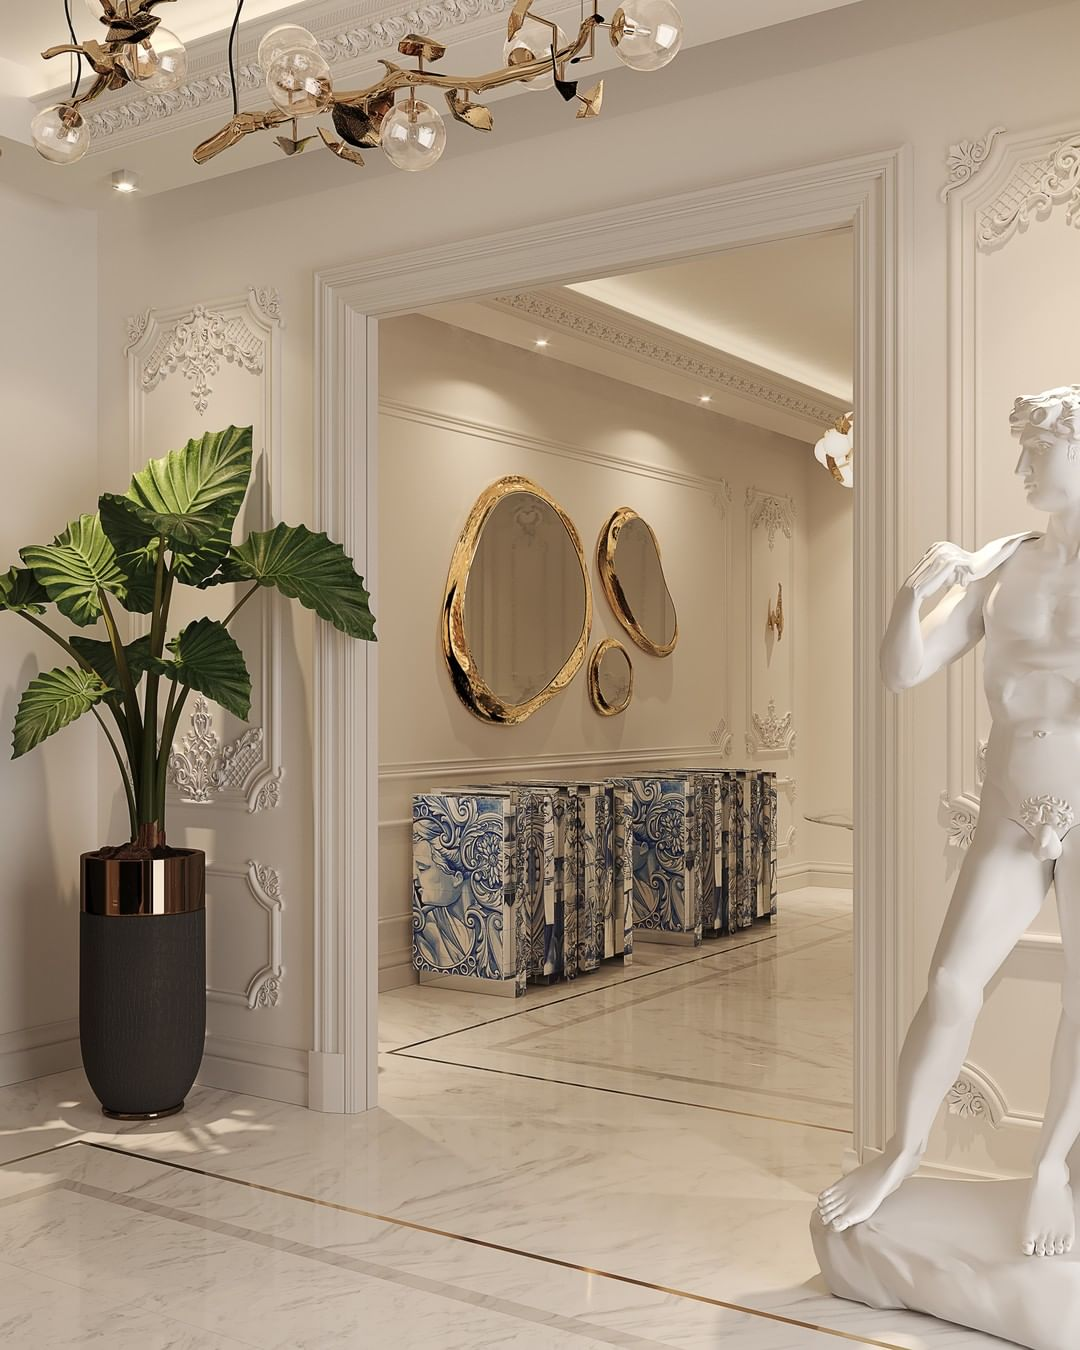 Hallway Decor for a Stunning Memorable Foyer hallway decorating Hallway decorating-fill the space with personality bl heritage modern sideboard